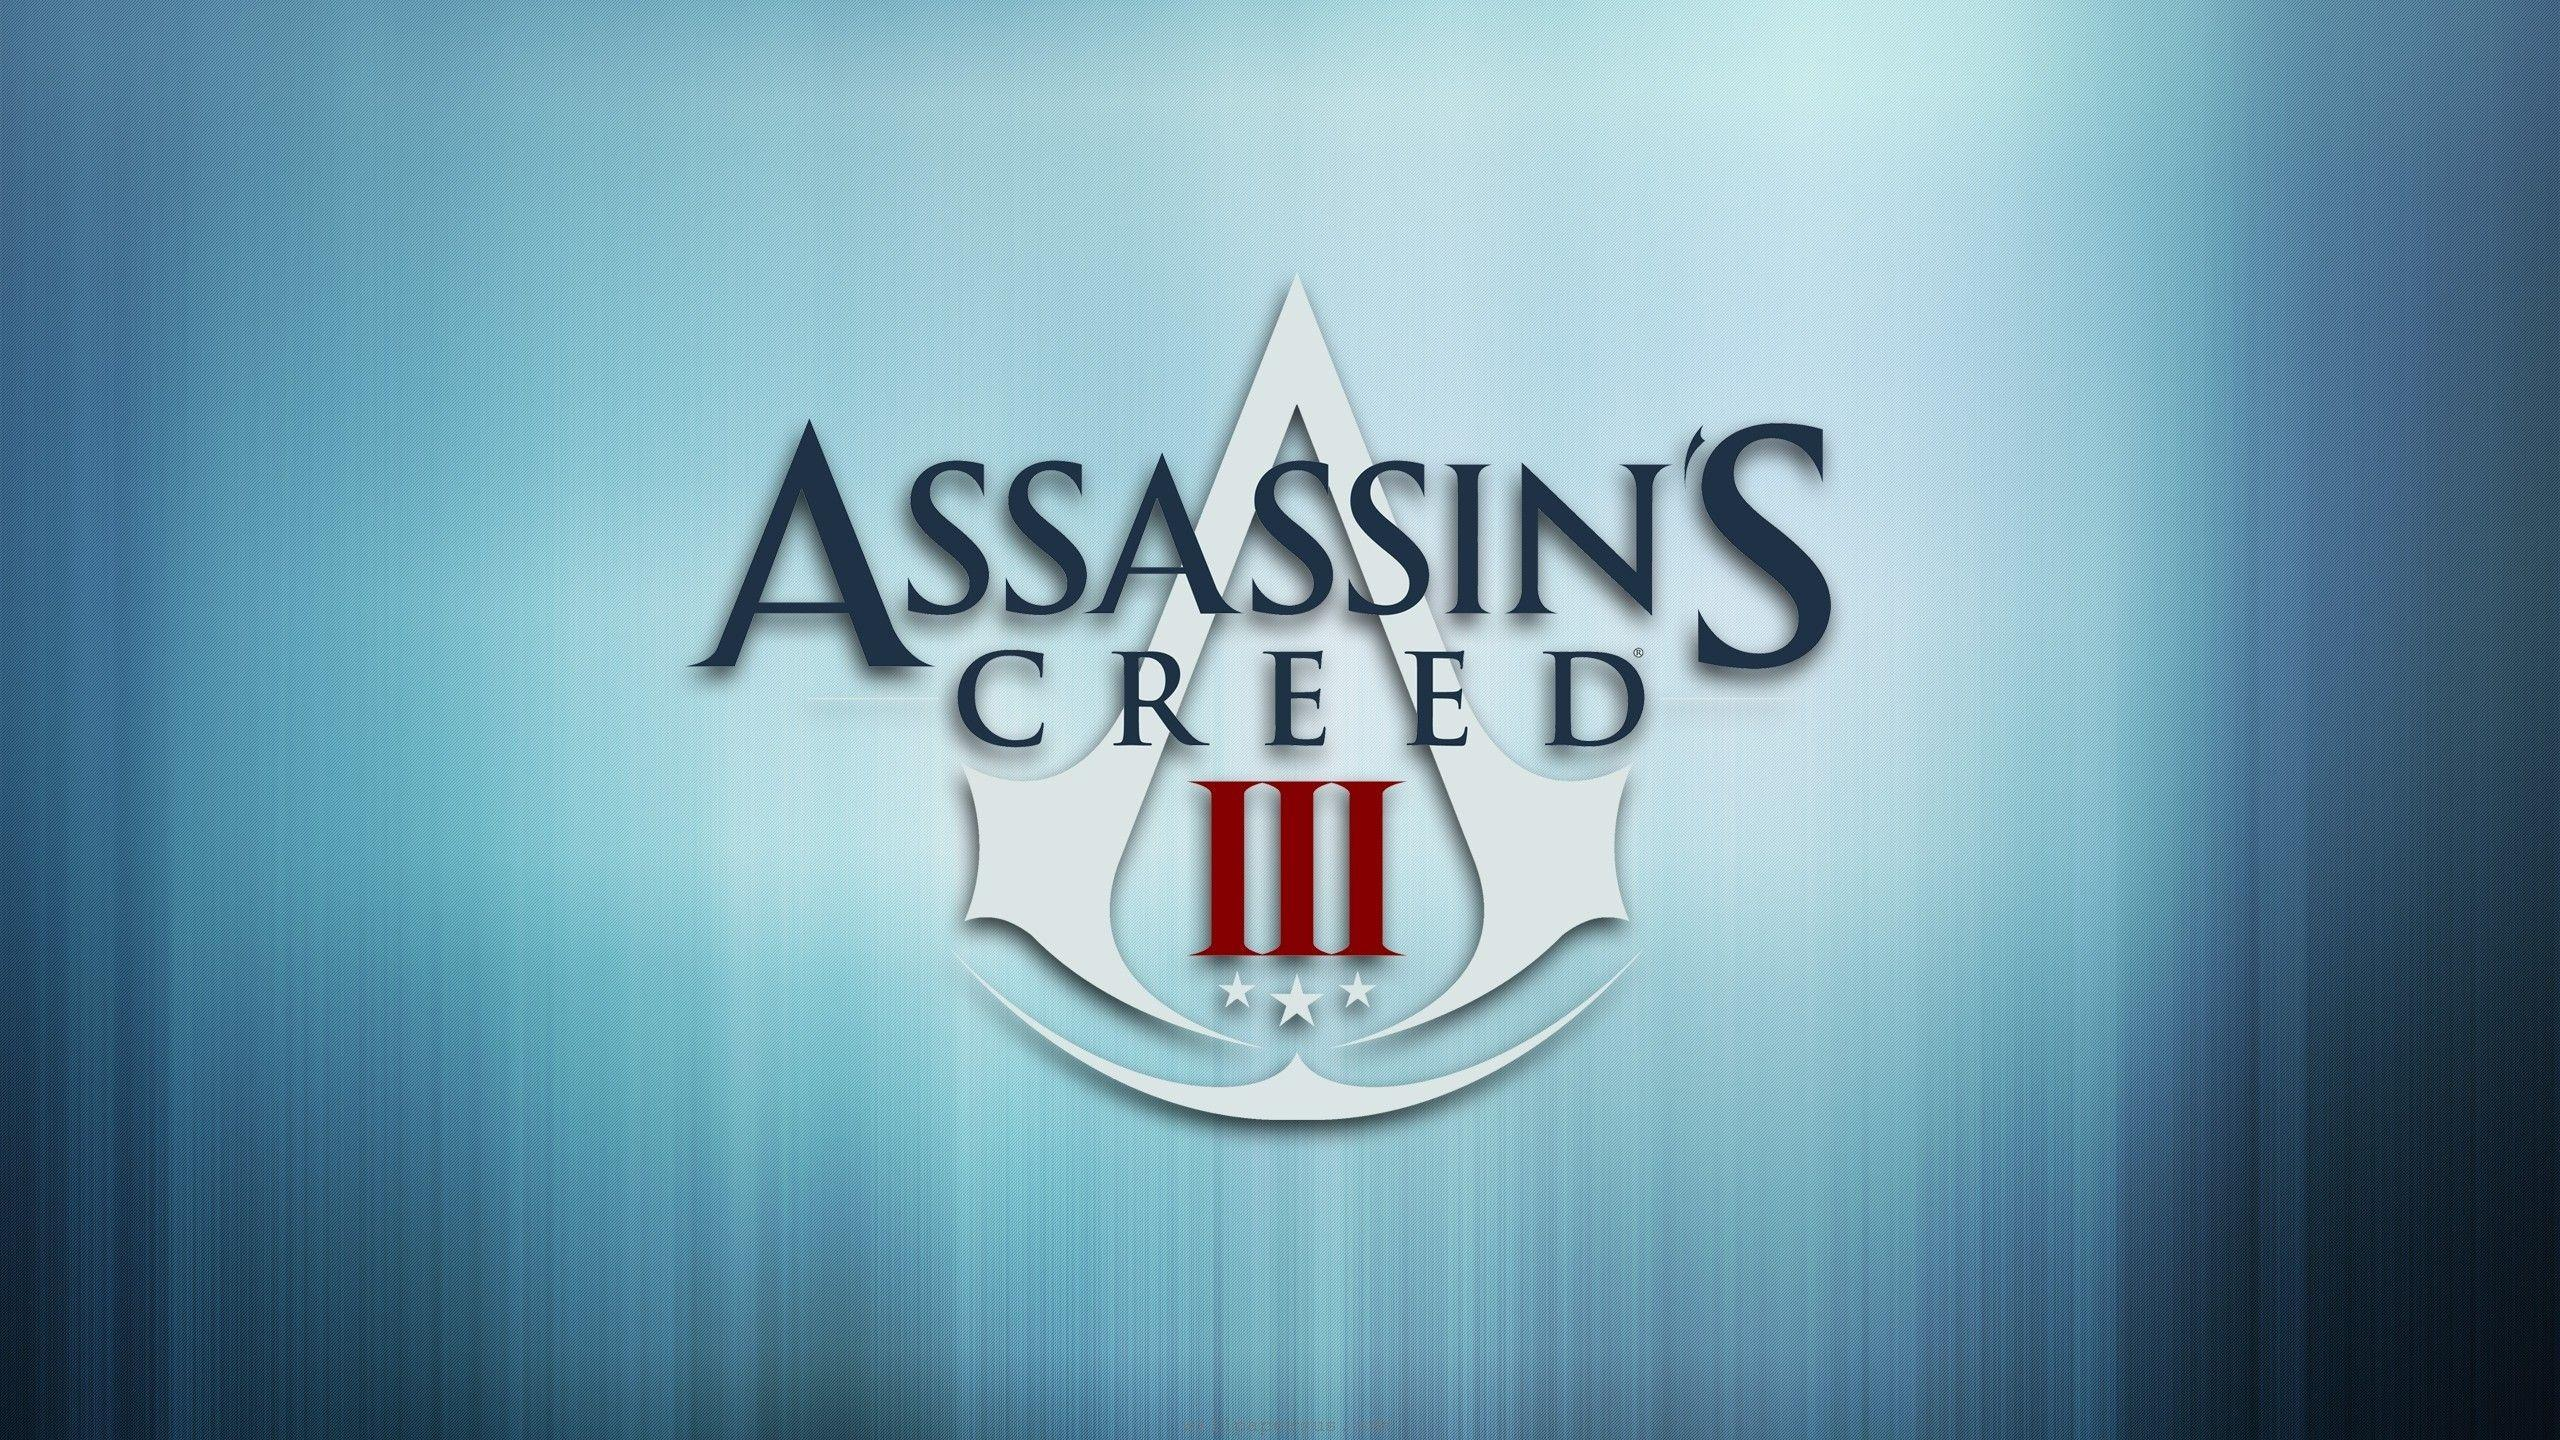 Download Assassin&Creed 3 Logo Wallpapers